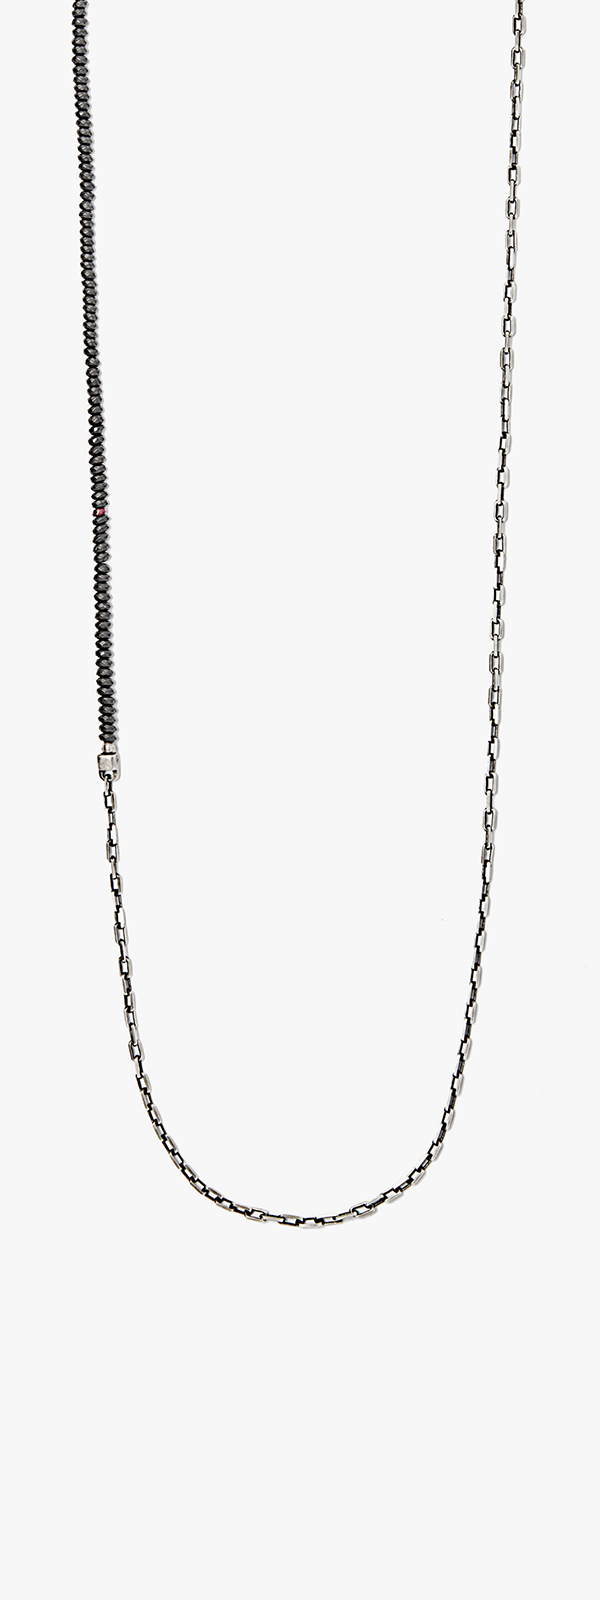 Image of Matte Hematite Bead to Sterling Chain Necklace